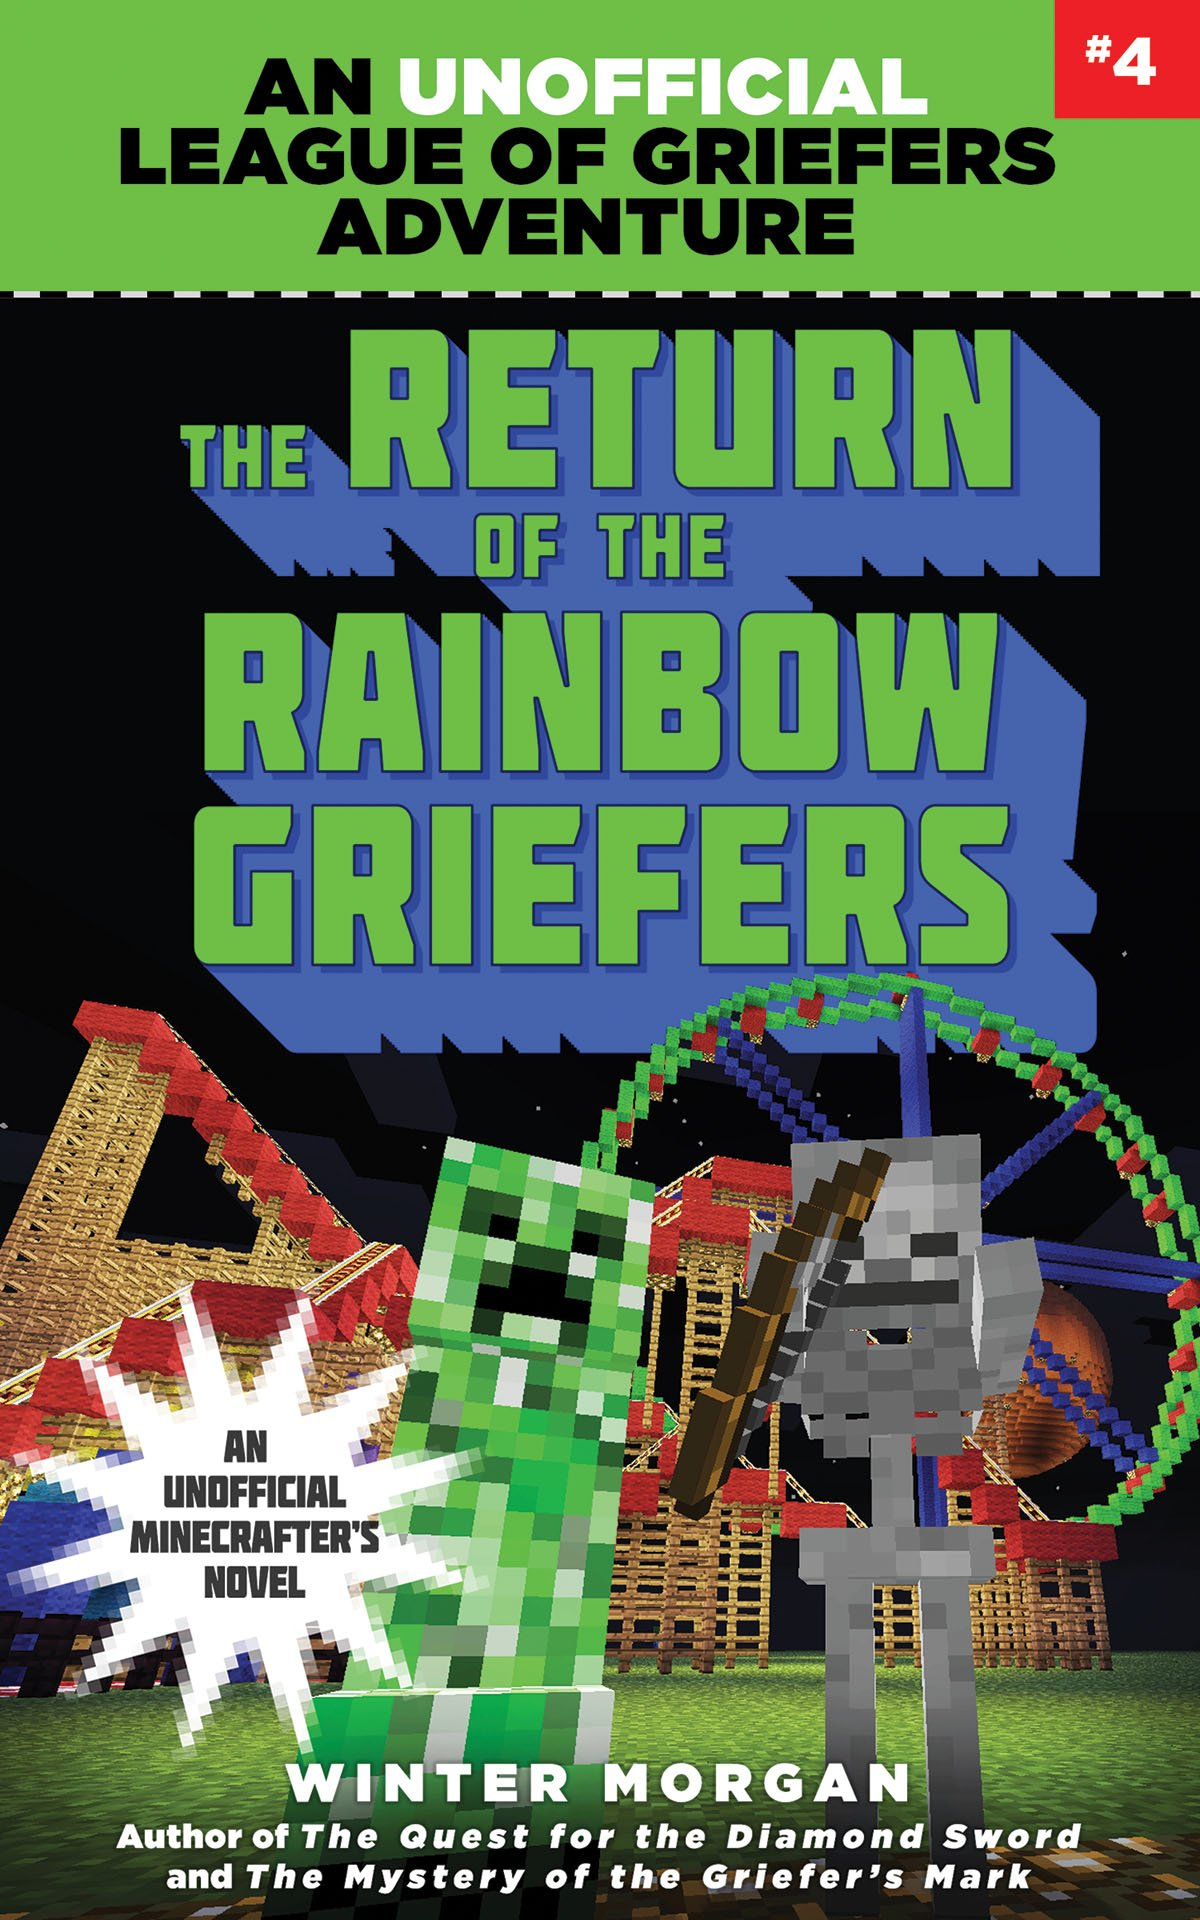 The Return of the Rainbow Griefers: An Unofficial League of